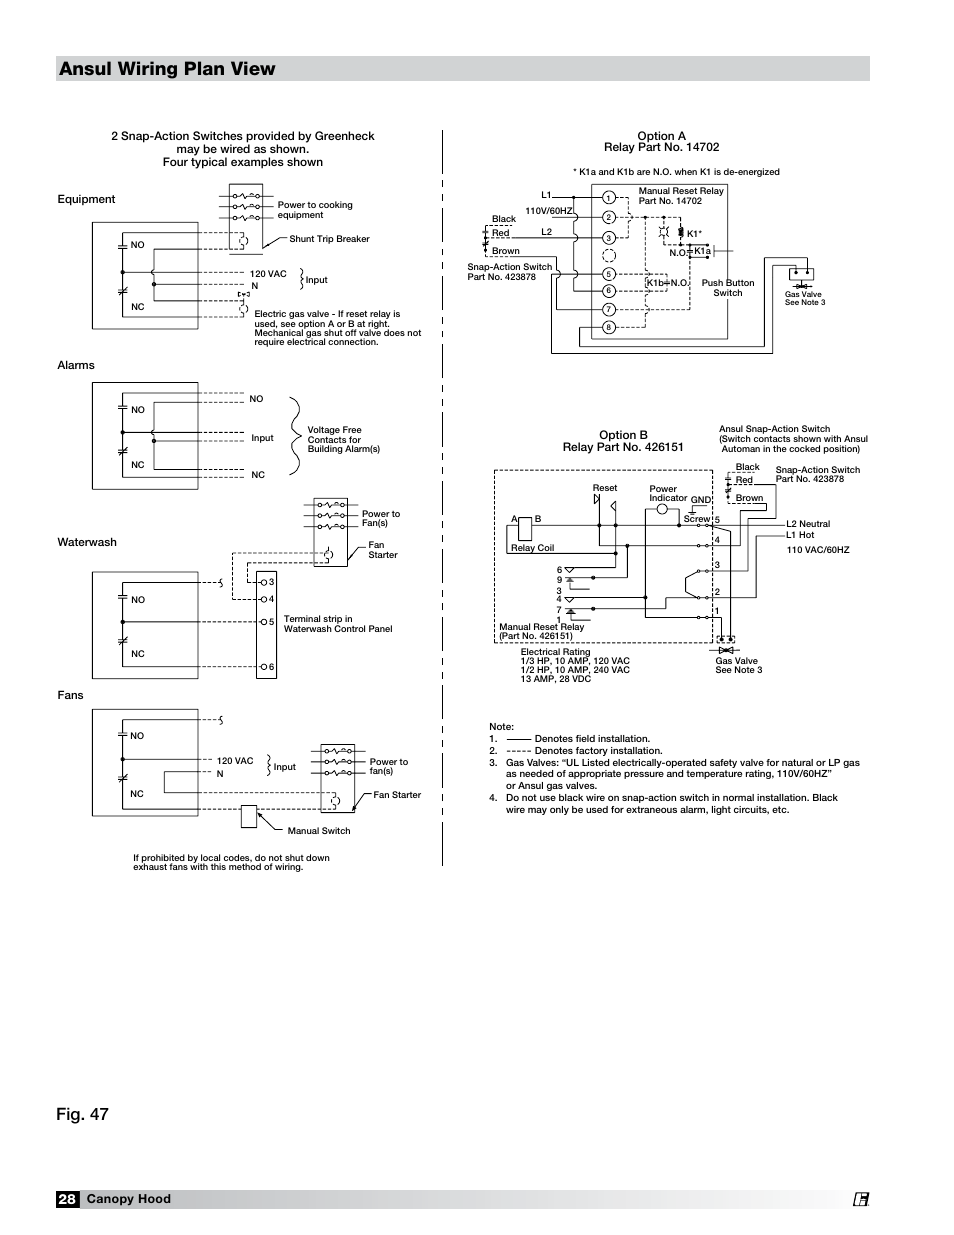 Field wiring for the ansul snap action switch ansul wiring plan field wiring for the ansul snap action switch ansul wiring plan view fig 47 greenheck fan 452413 user manual page 28 40 swarovskicordoba Images